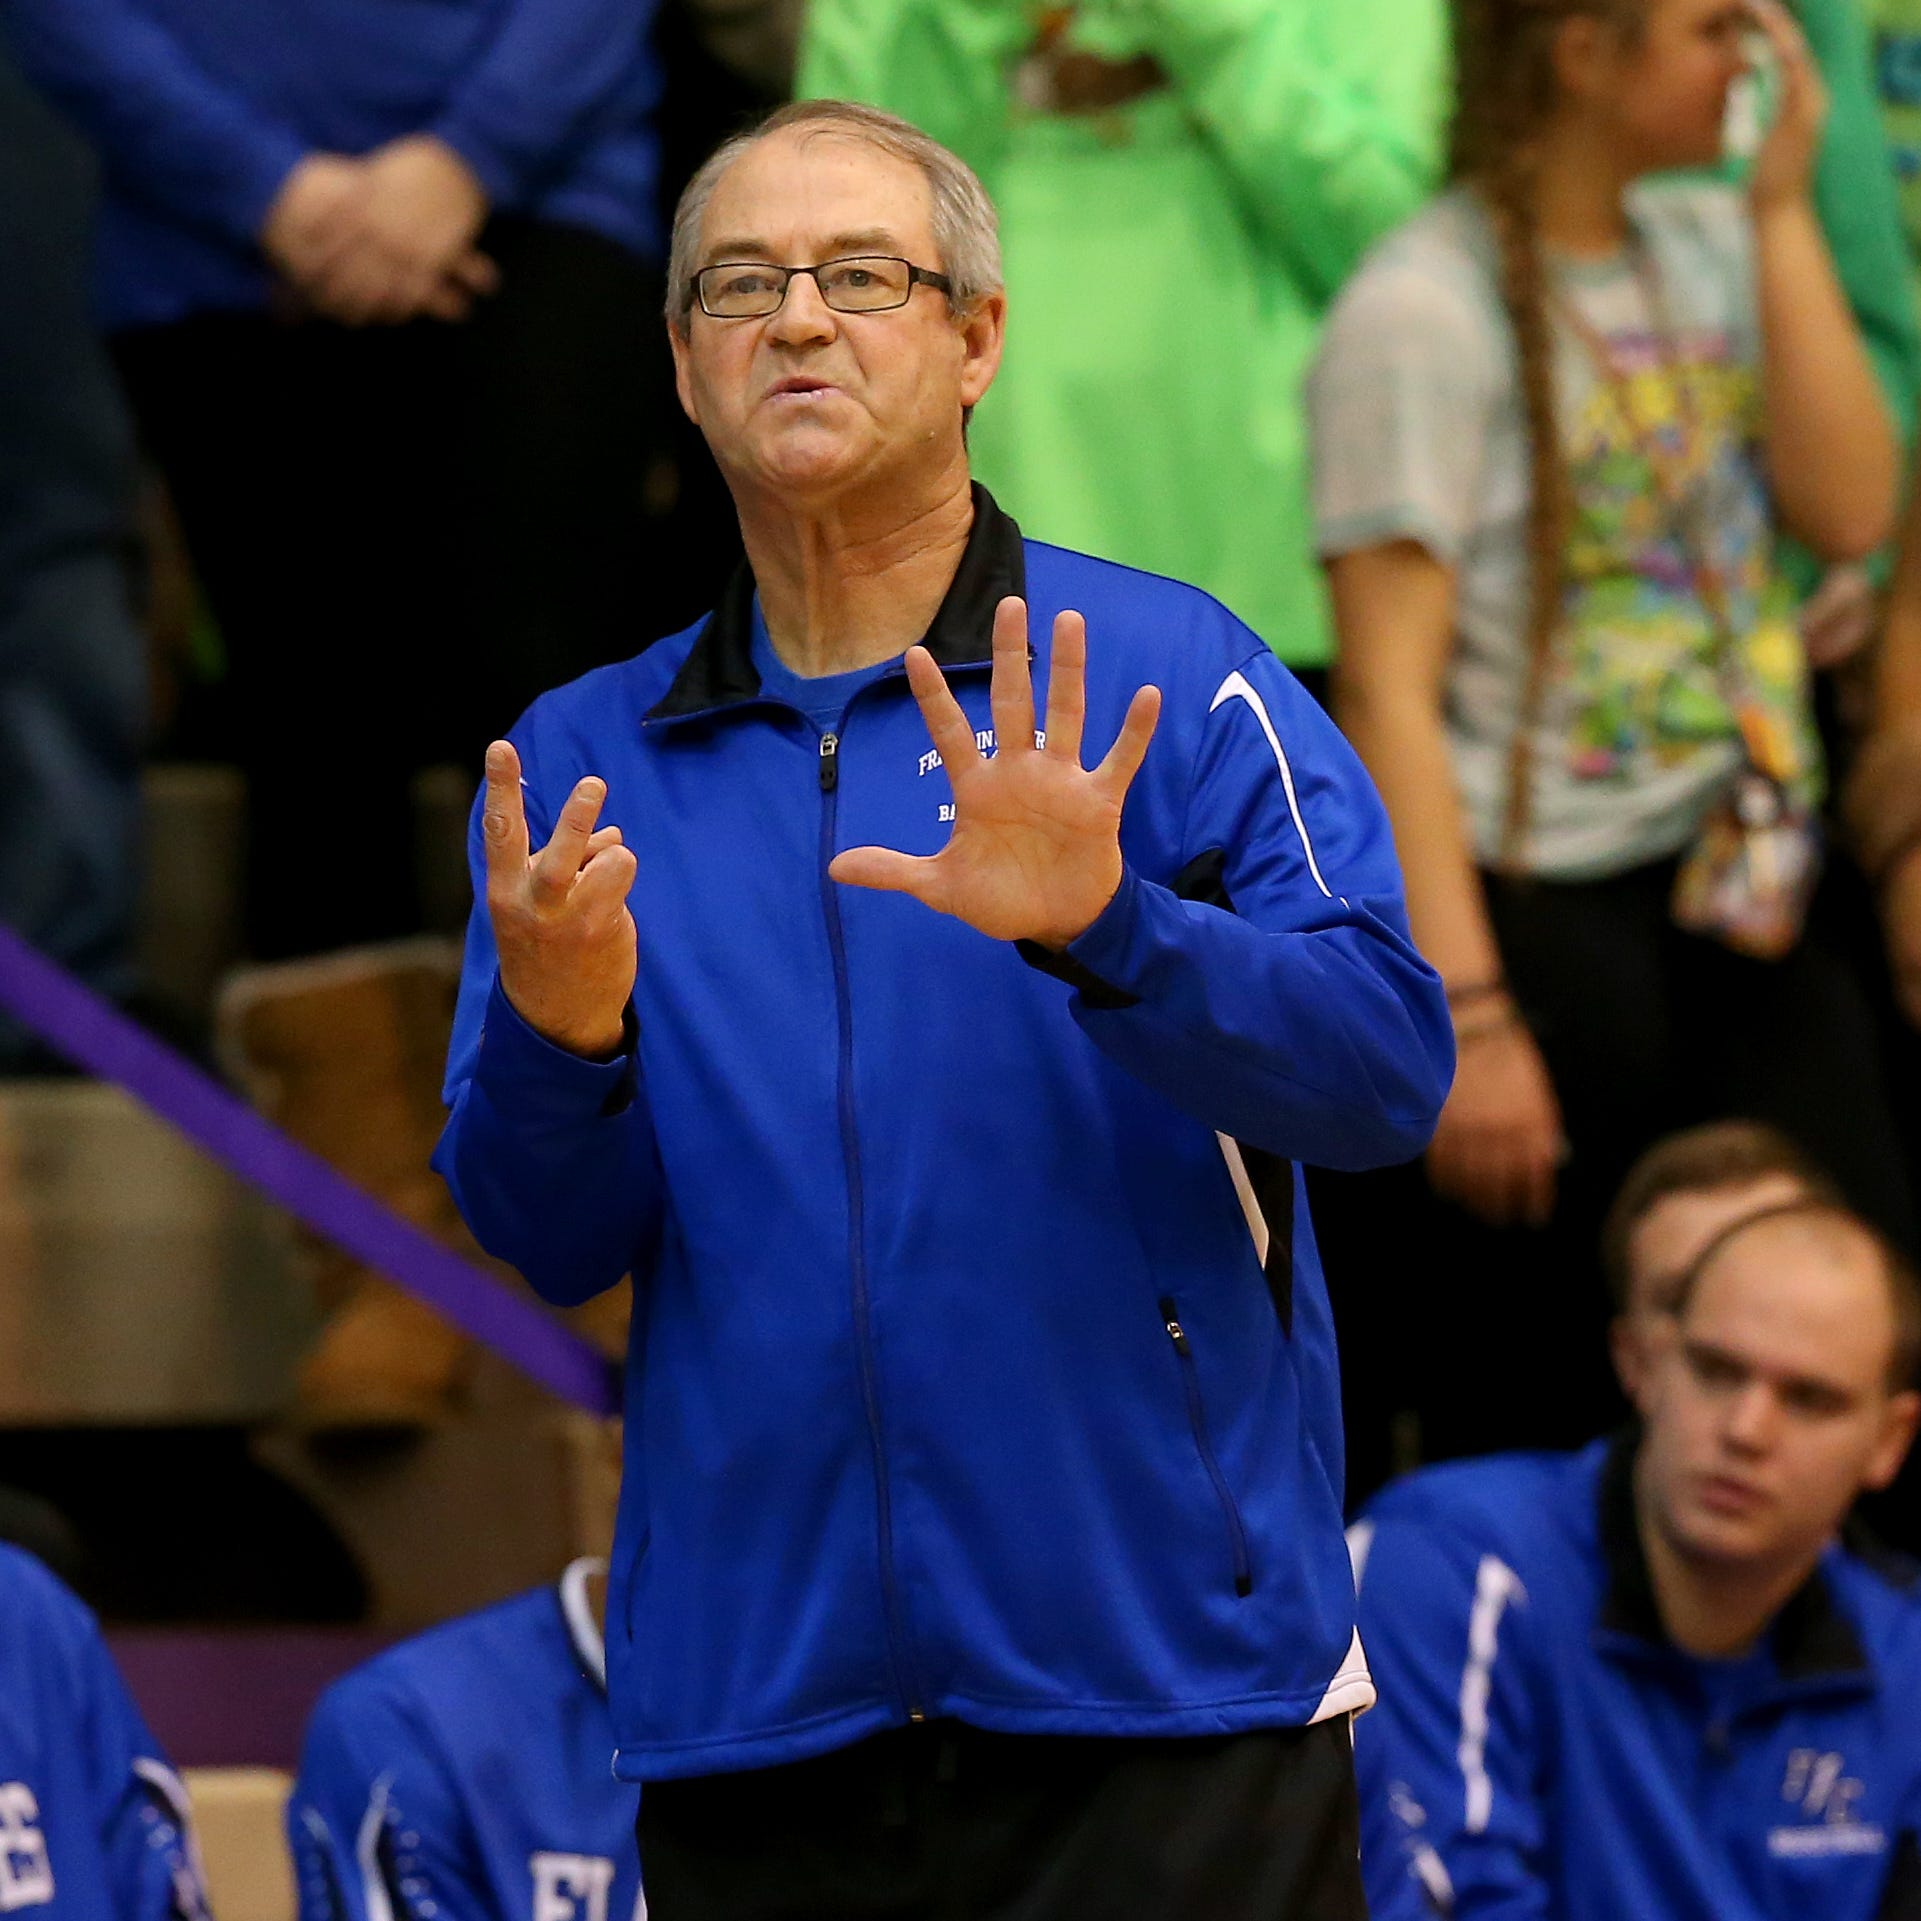 Franklin Central basketball coach John Rockey calls a play against Ben Davis on Nov. 25, 2015.